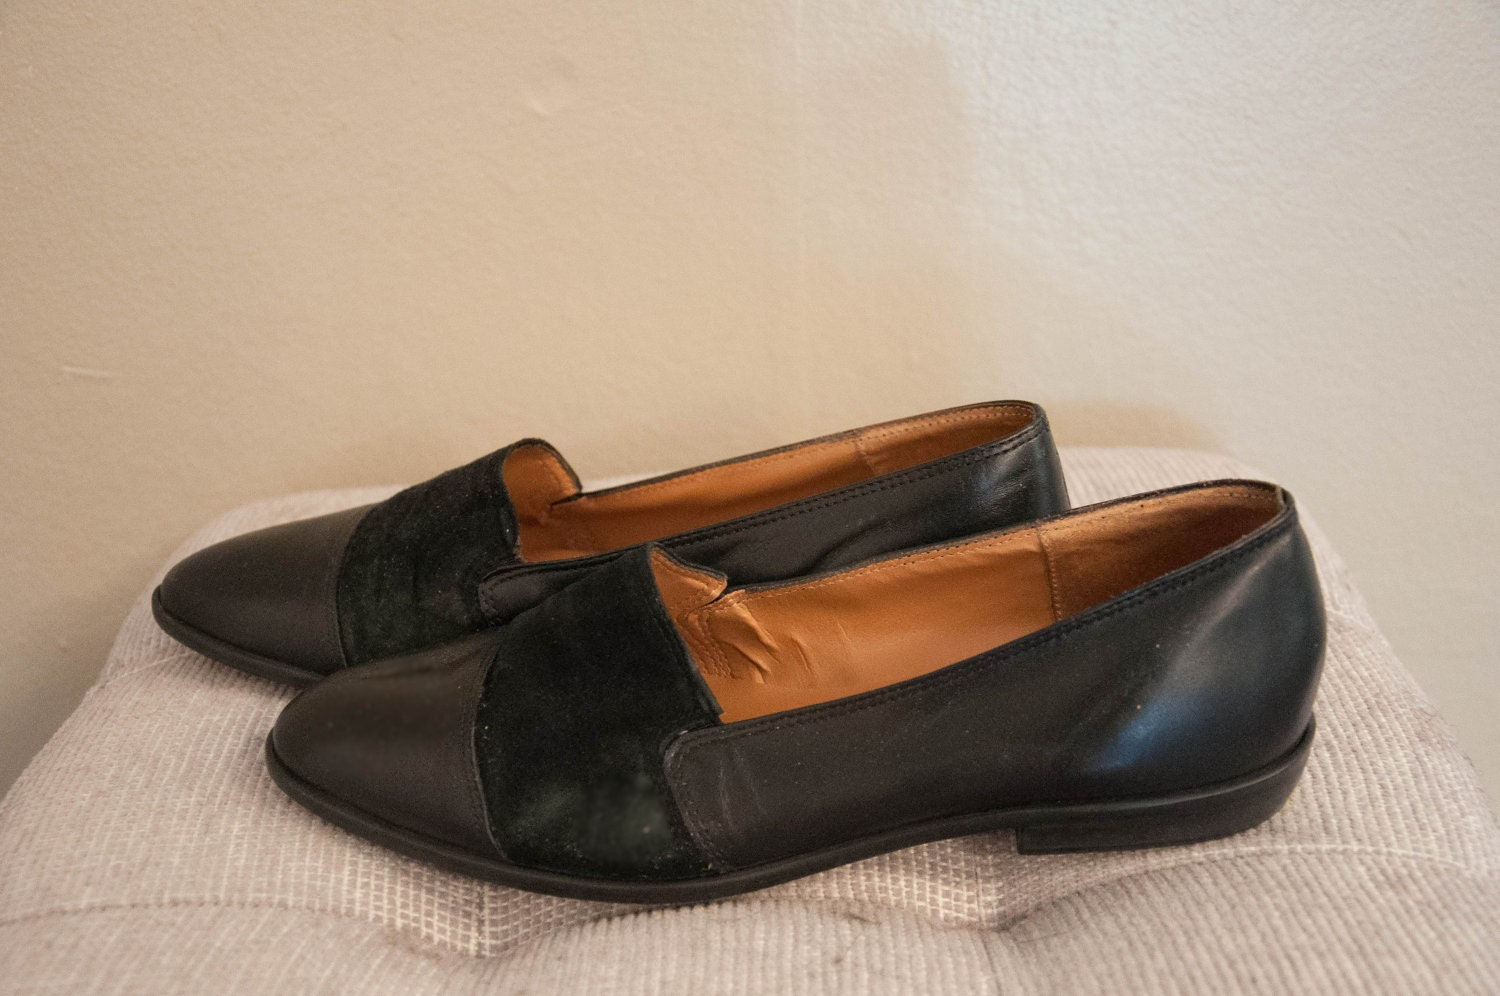 1980s black loafer flats 90s slip on skimmers shoes leather